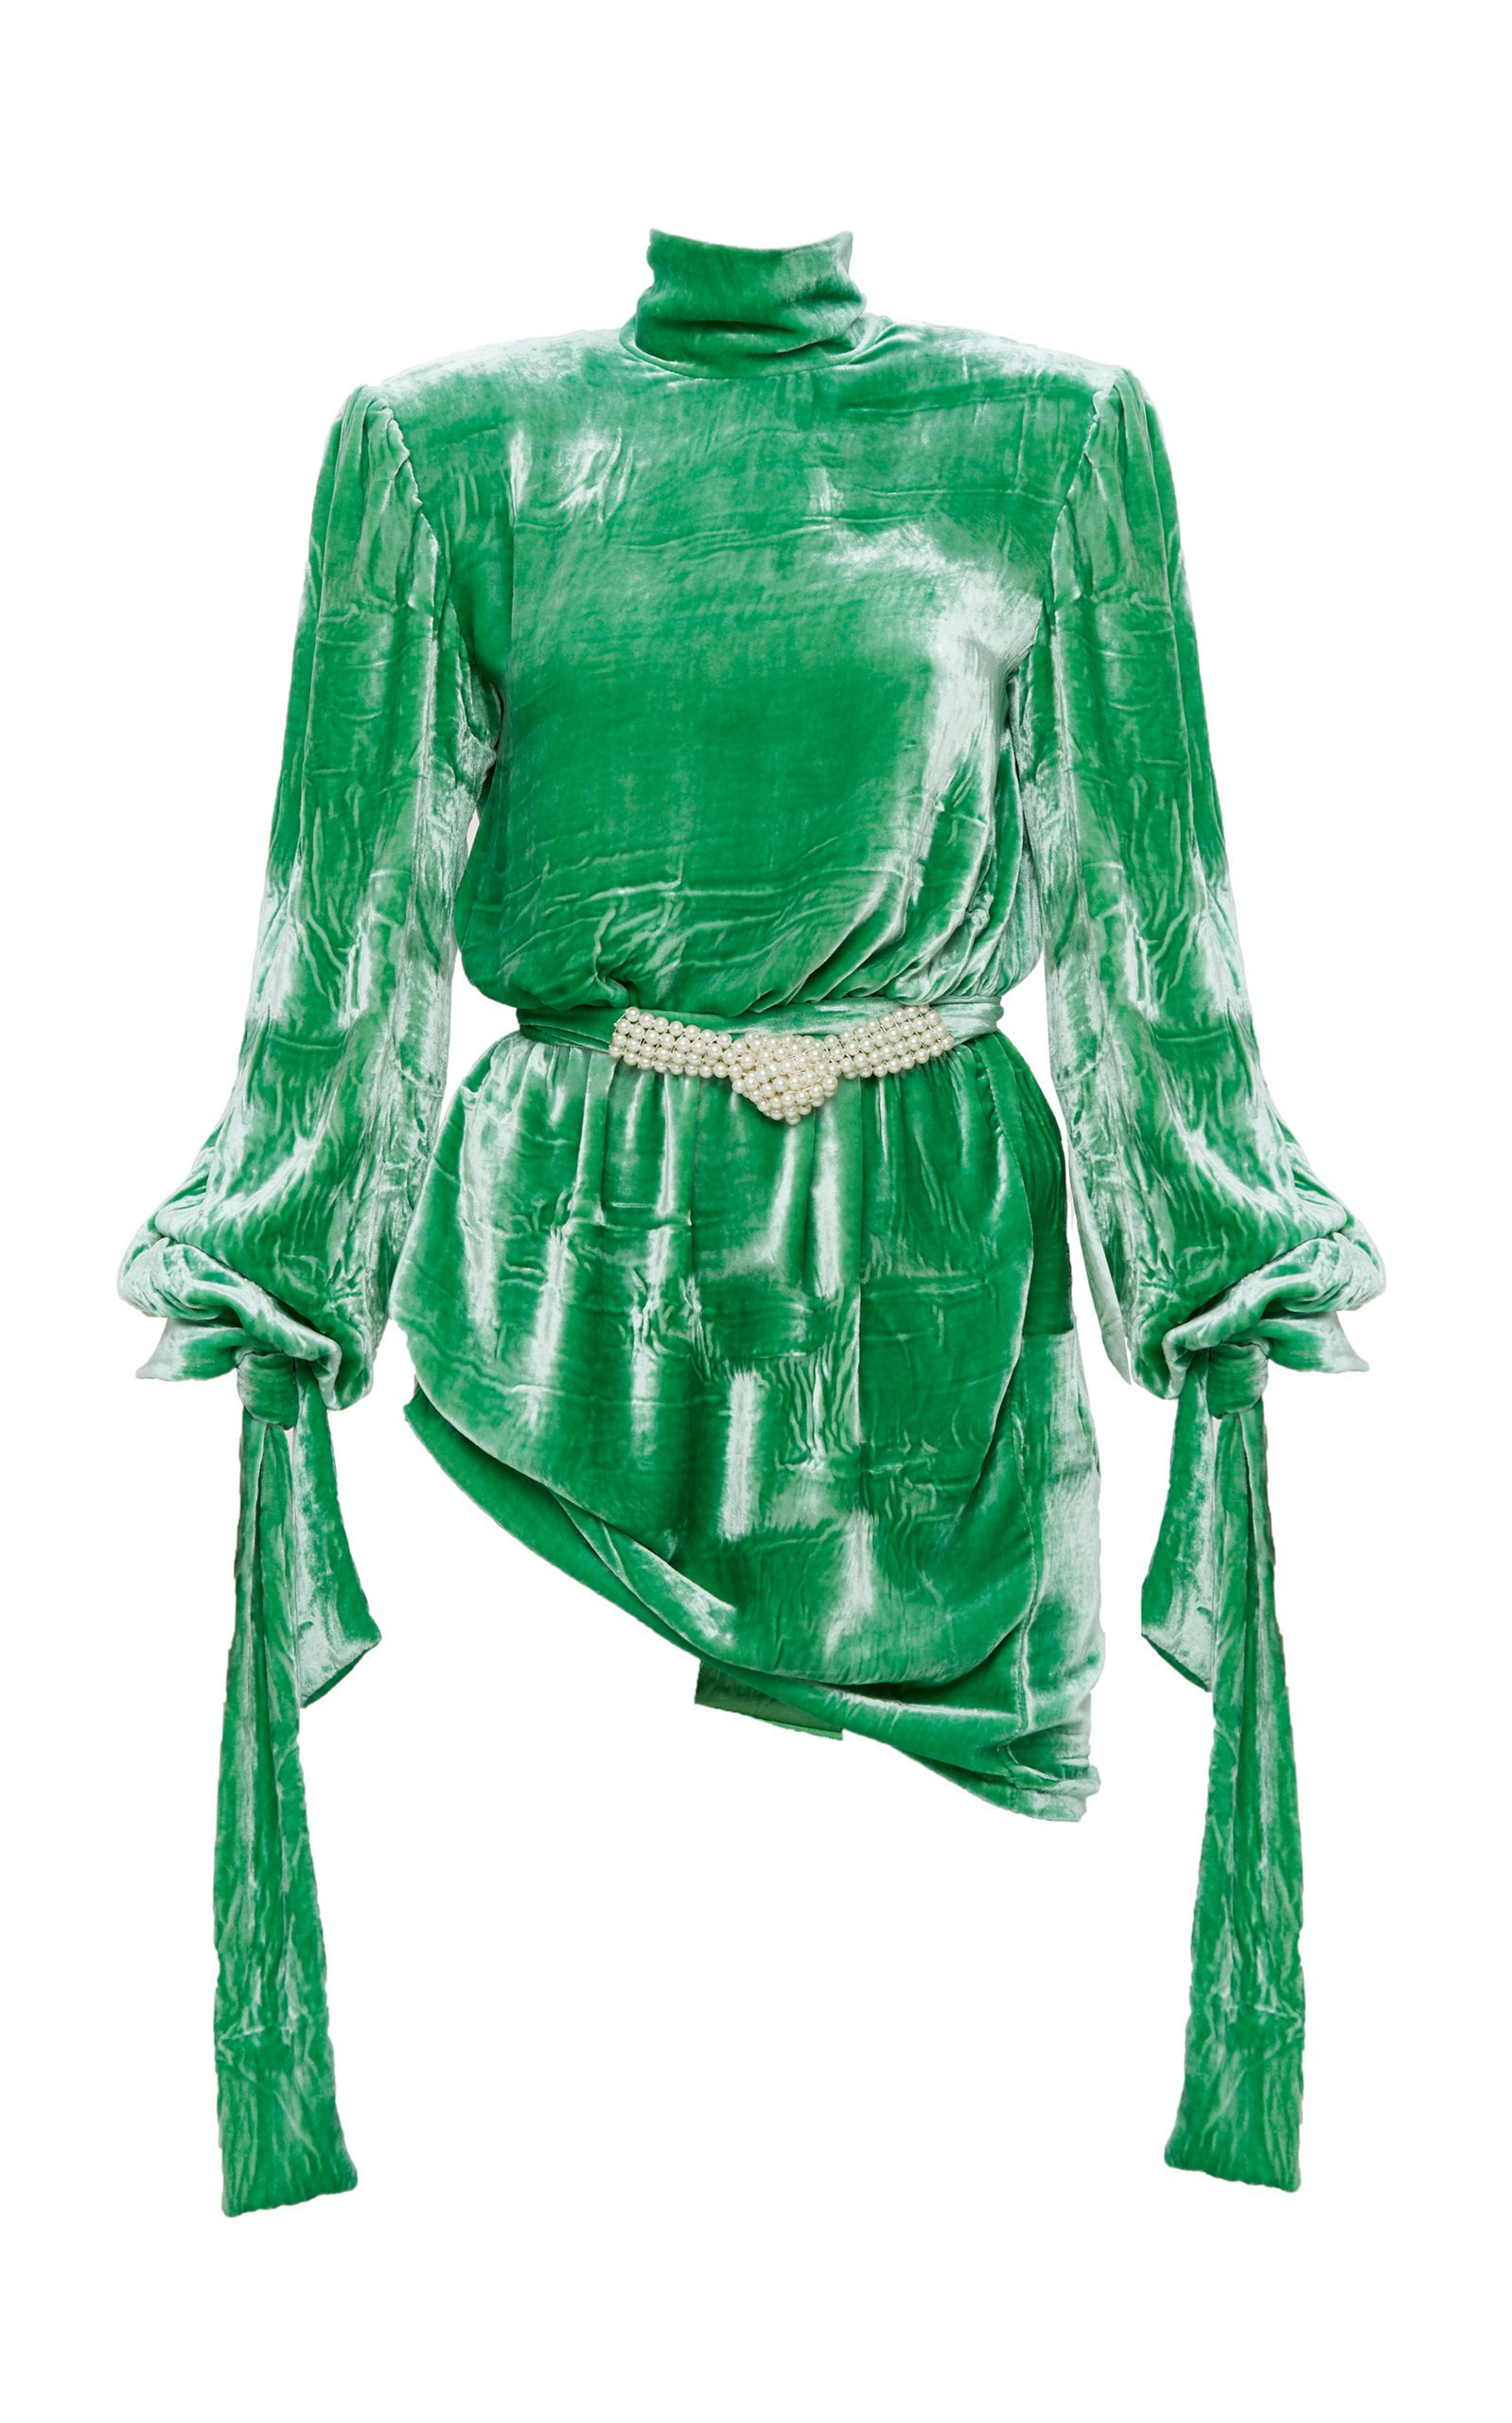 Mach & Mach Green Velvet Dynasty Dress With Knotted Pearl Belt